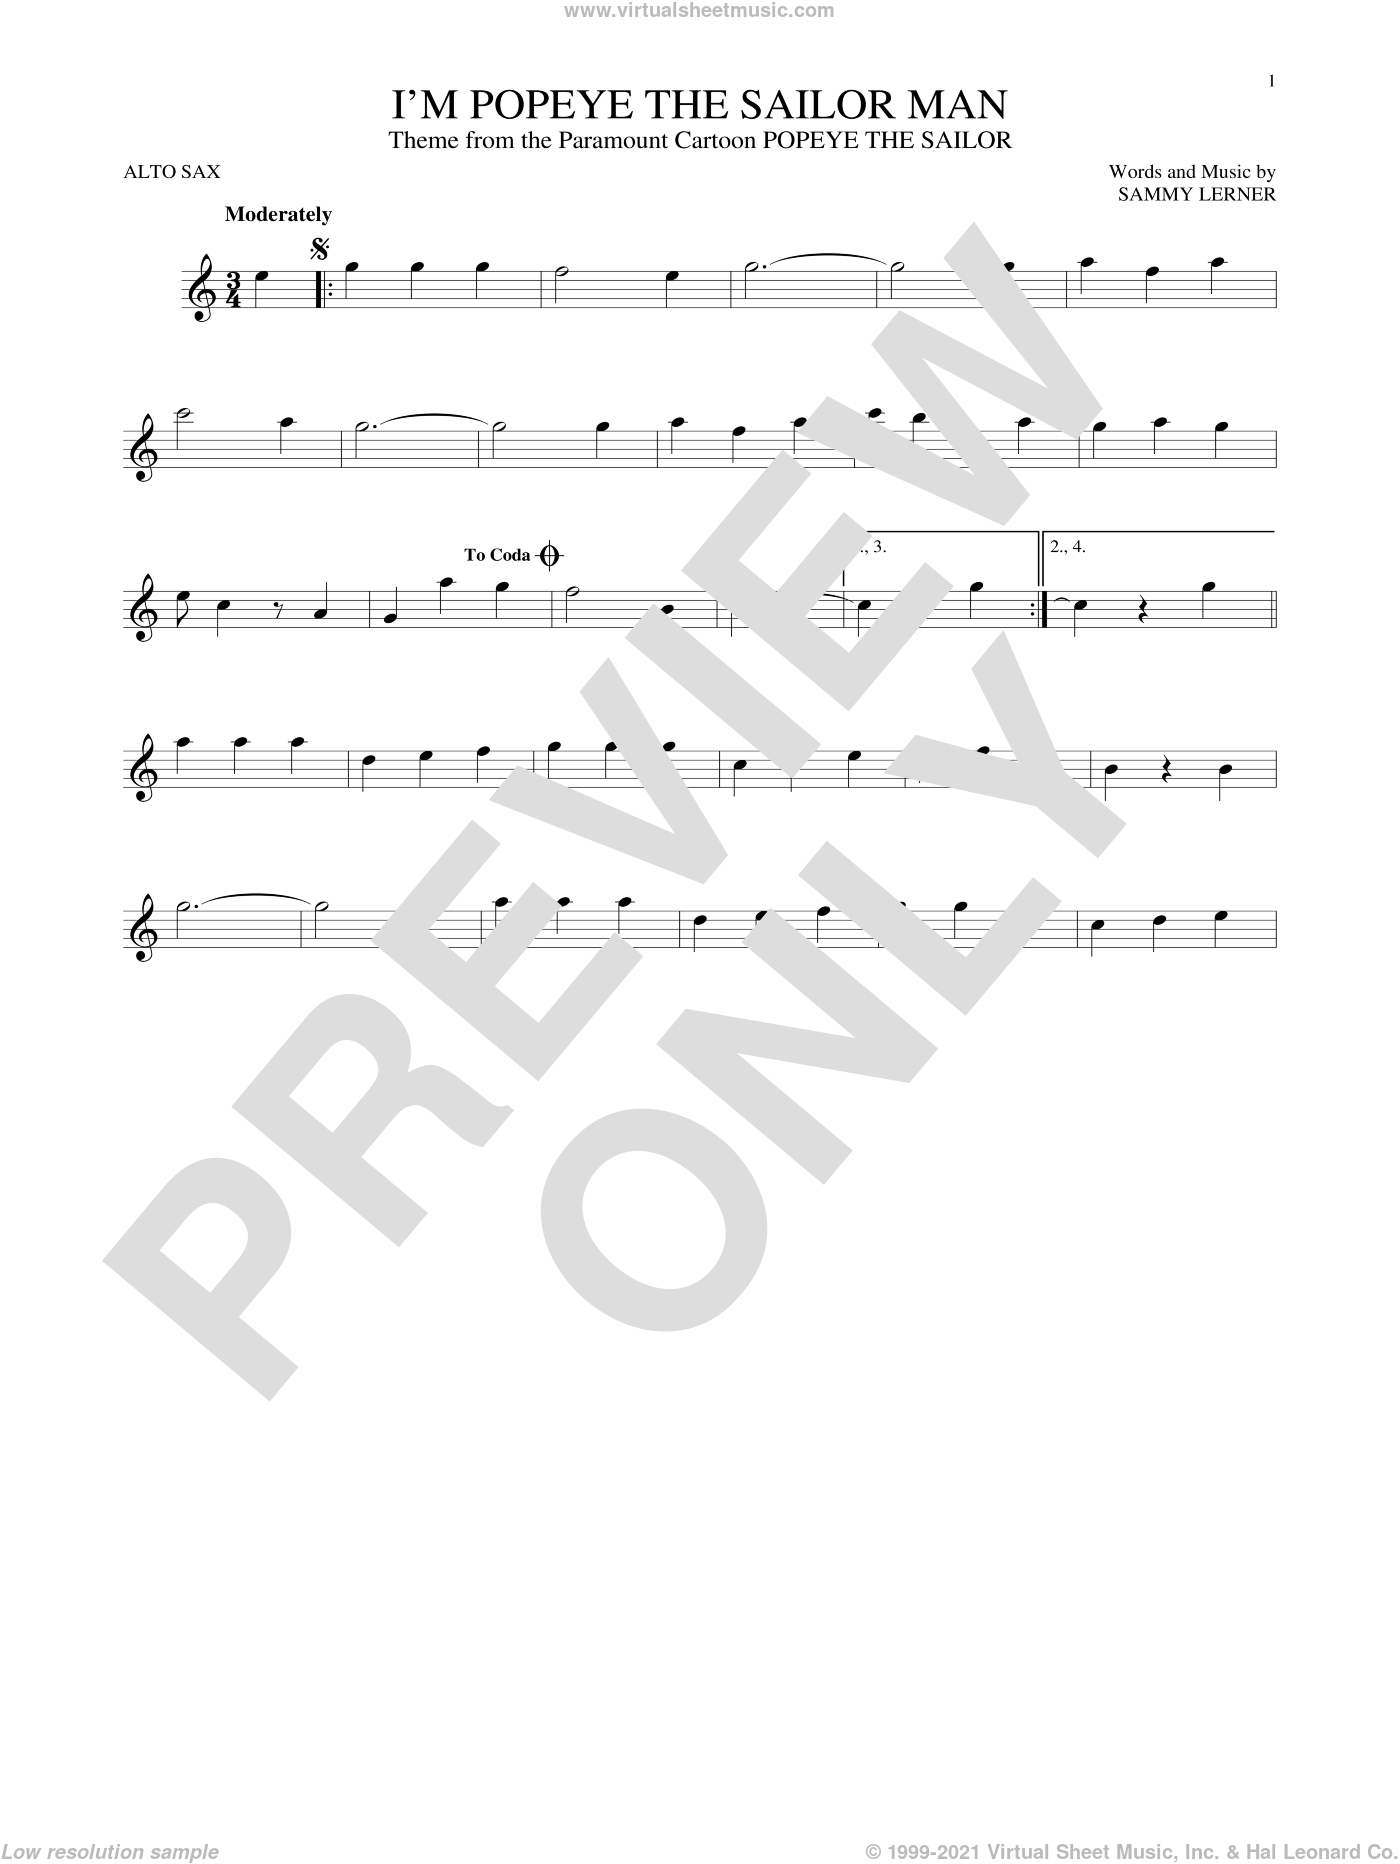 I'm Popeye The Sailor Man sheet music for alto saxophone solo by Sammy Lerner, intermediate skill level